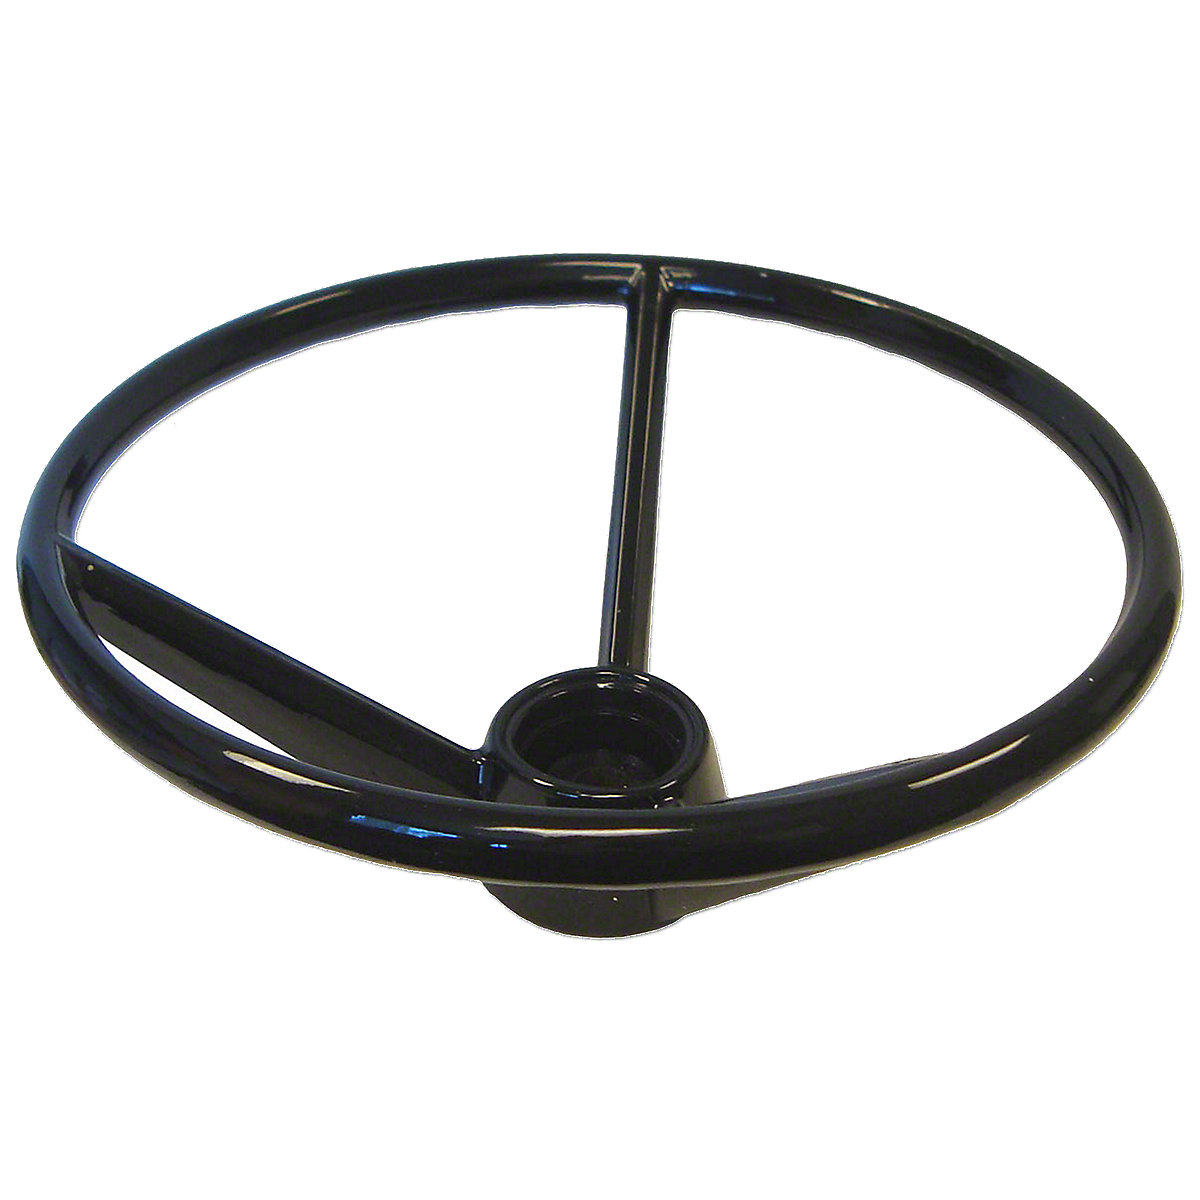 Deep Dish Steering Wheel For Allis Chalmers: 190XT, 170, 175, 180, 185, 190, 200, 210, 220, 545, 7030, 7040, 7050.